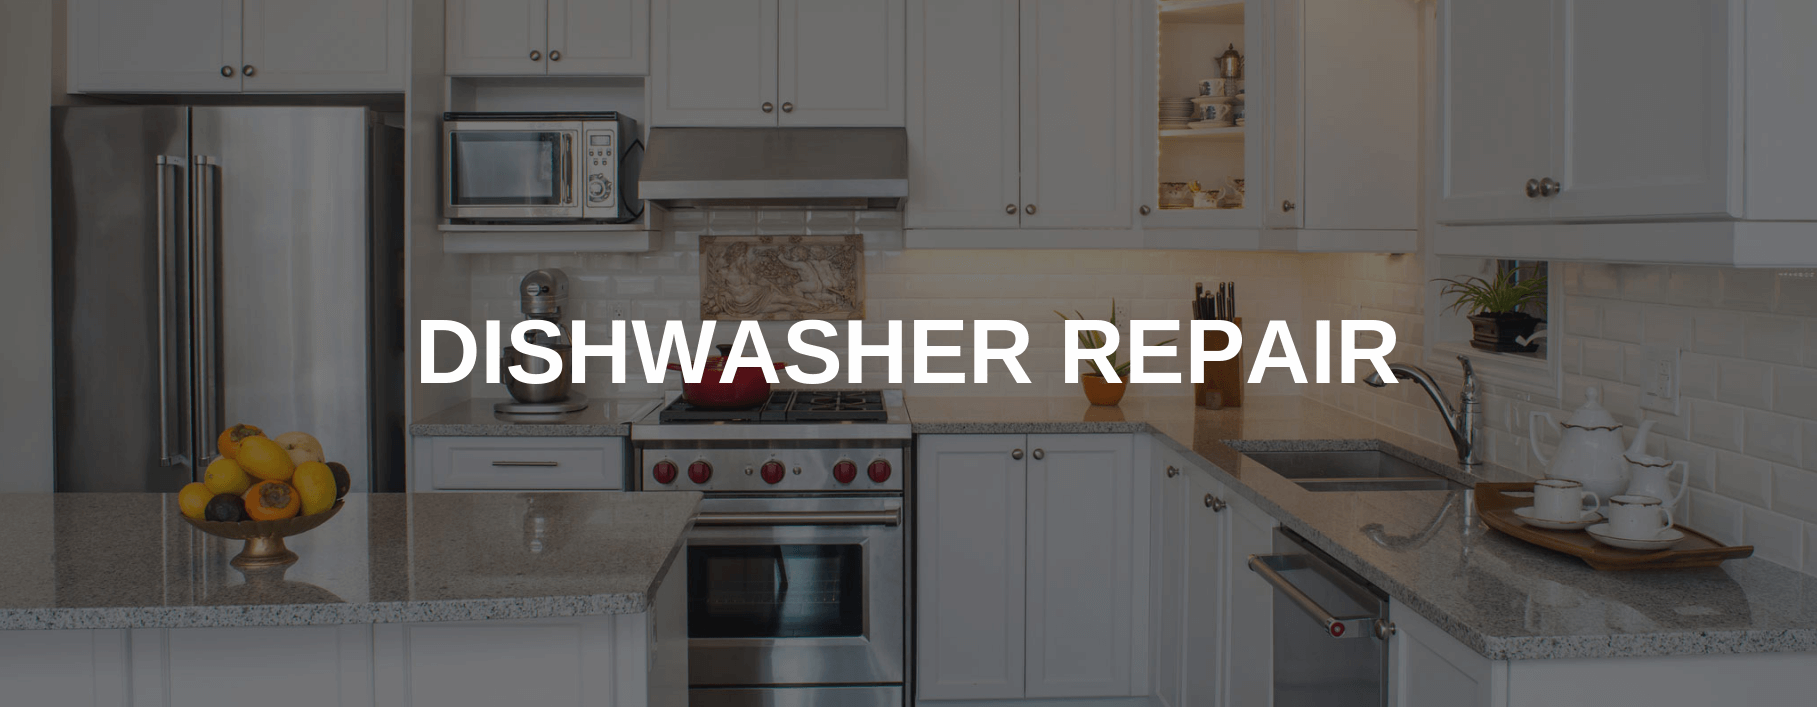 dishwasher repair encino